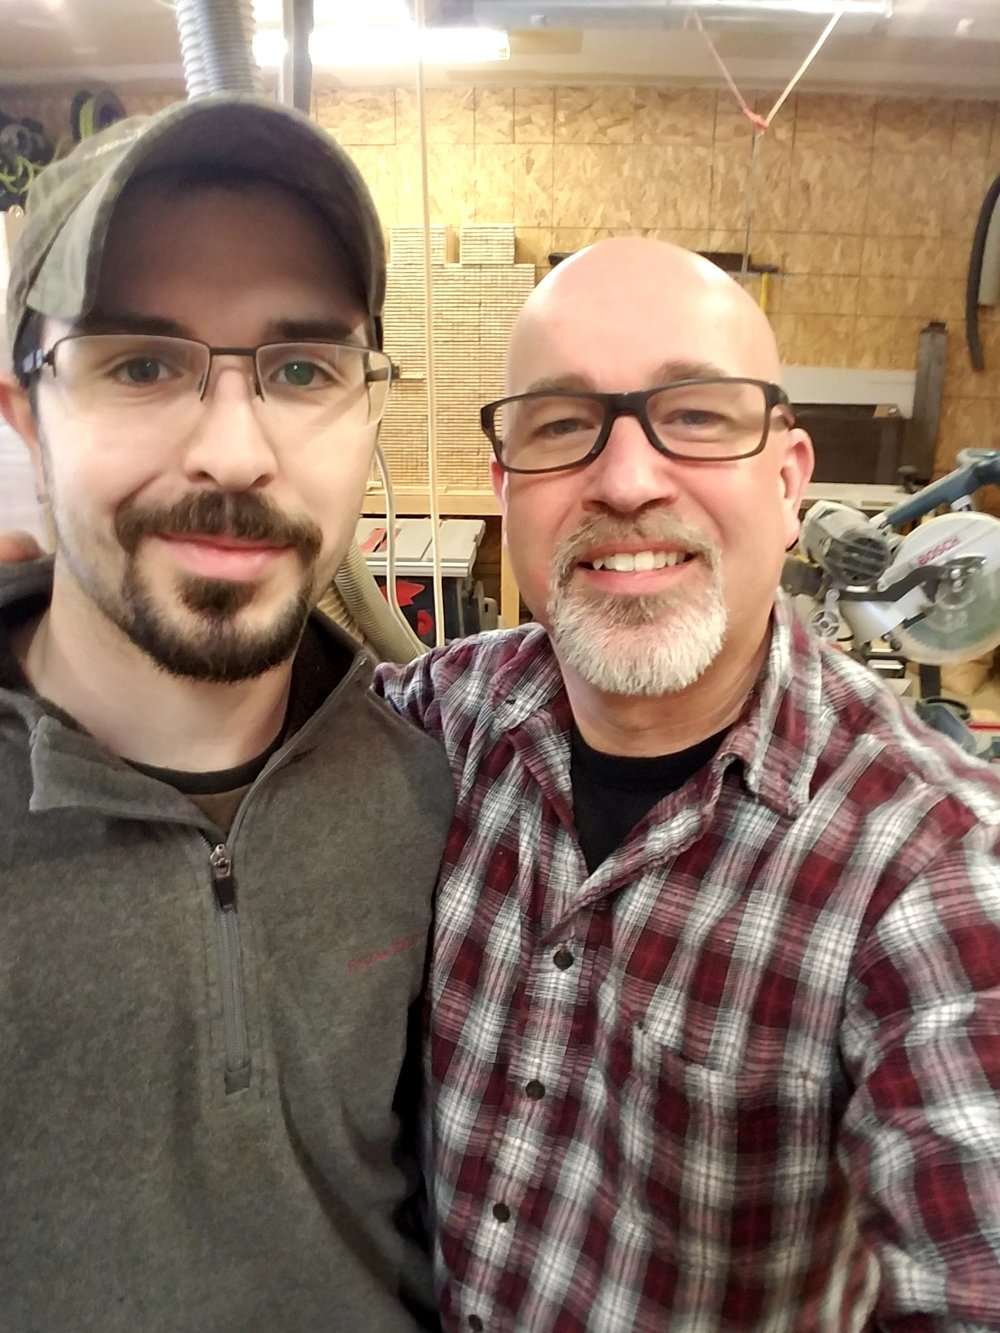 Teakwood Organics founder Chris Harvey (right) with long-time employee, friend and expert craftsman Cody Seekamp.